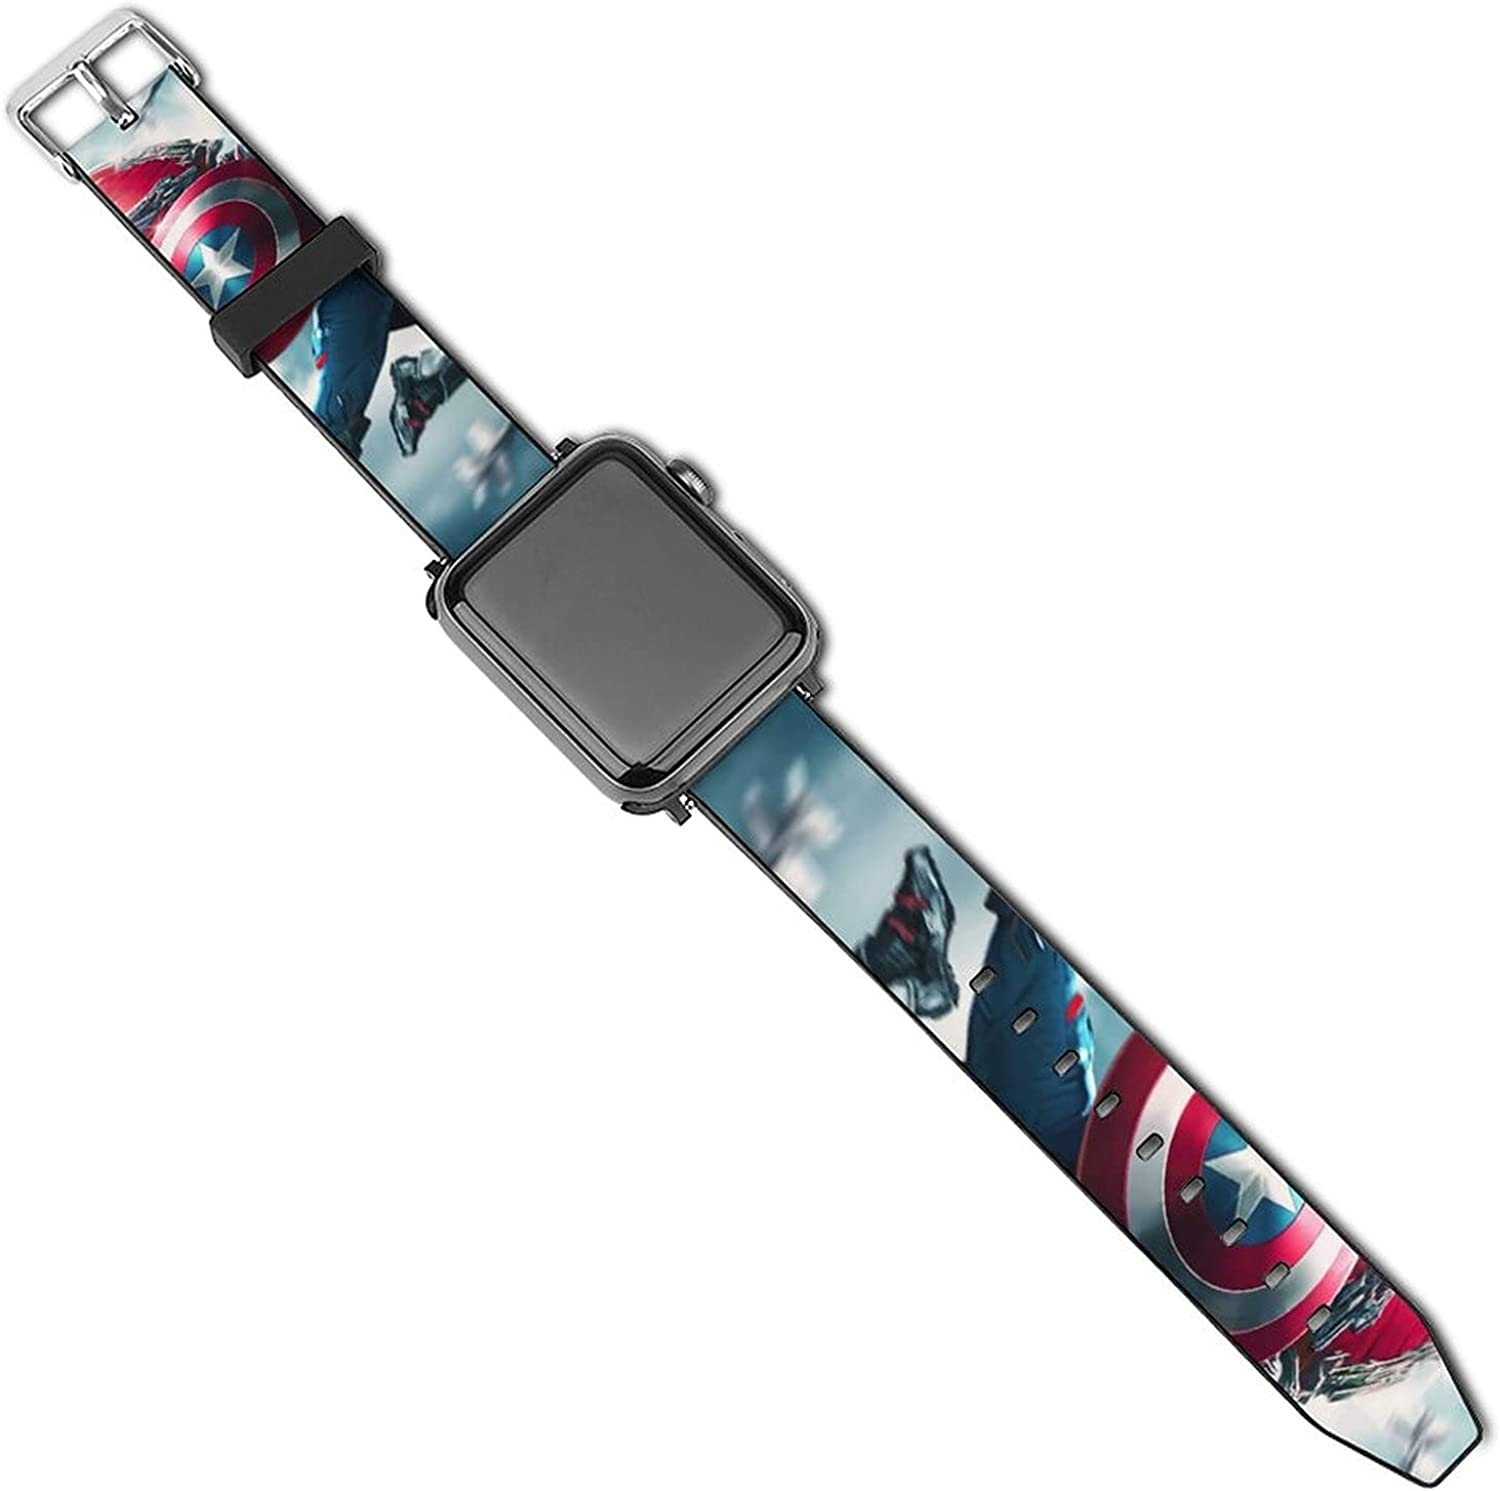 Falcon Captain America Apple Watch Diamond Protector Case Compatible with iWatch 38mm 40mm 42mm 44mm Bling PC Protective Case Bumper with Compatible with iWatch Series 6 / SE / 5 / 4/3/2/1